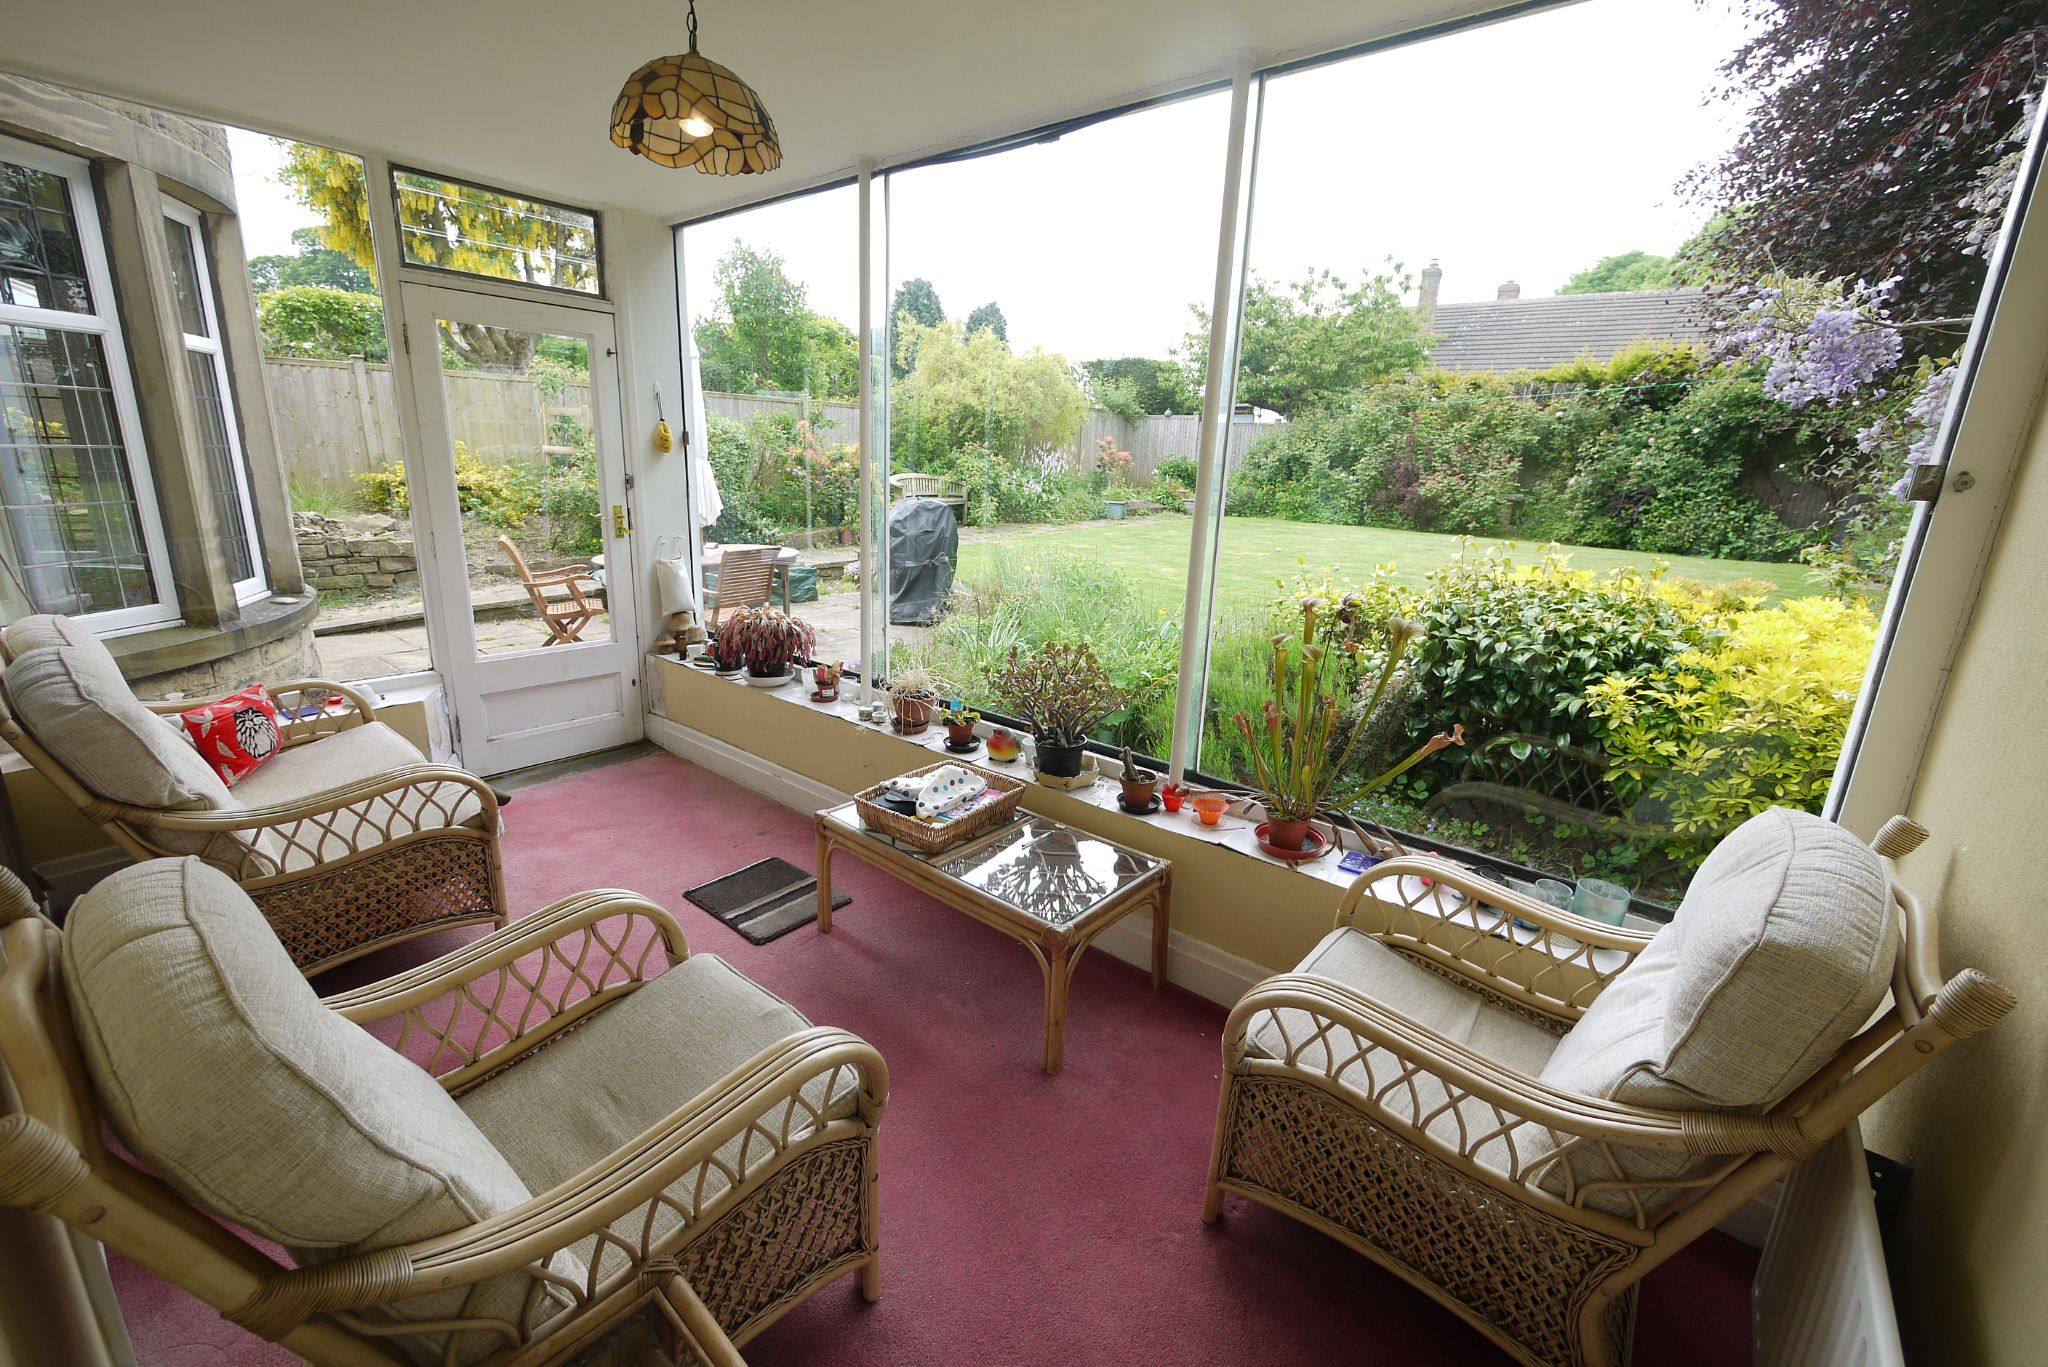 4 bedroom detached house SSTC in Brighouse - Photograph 8.